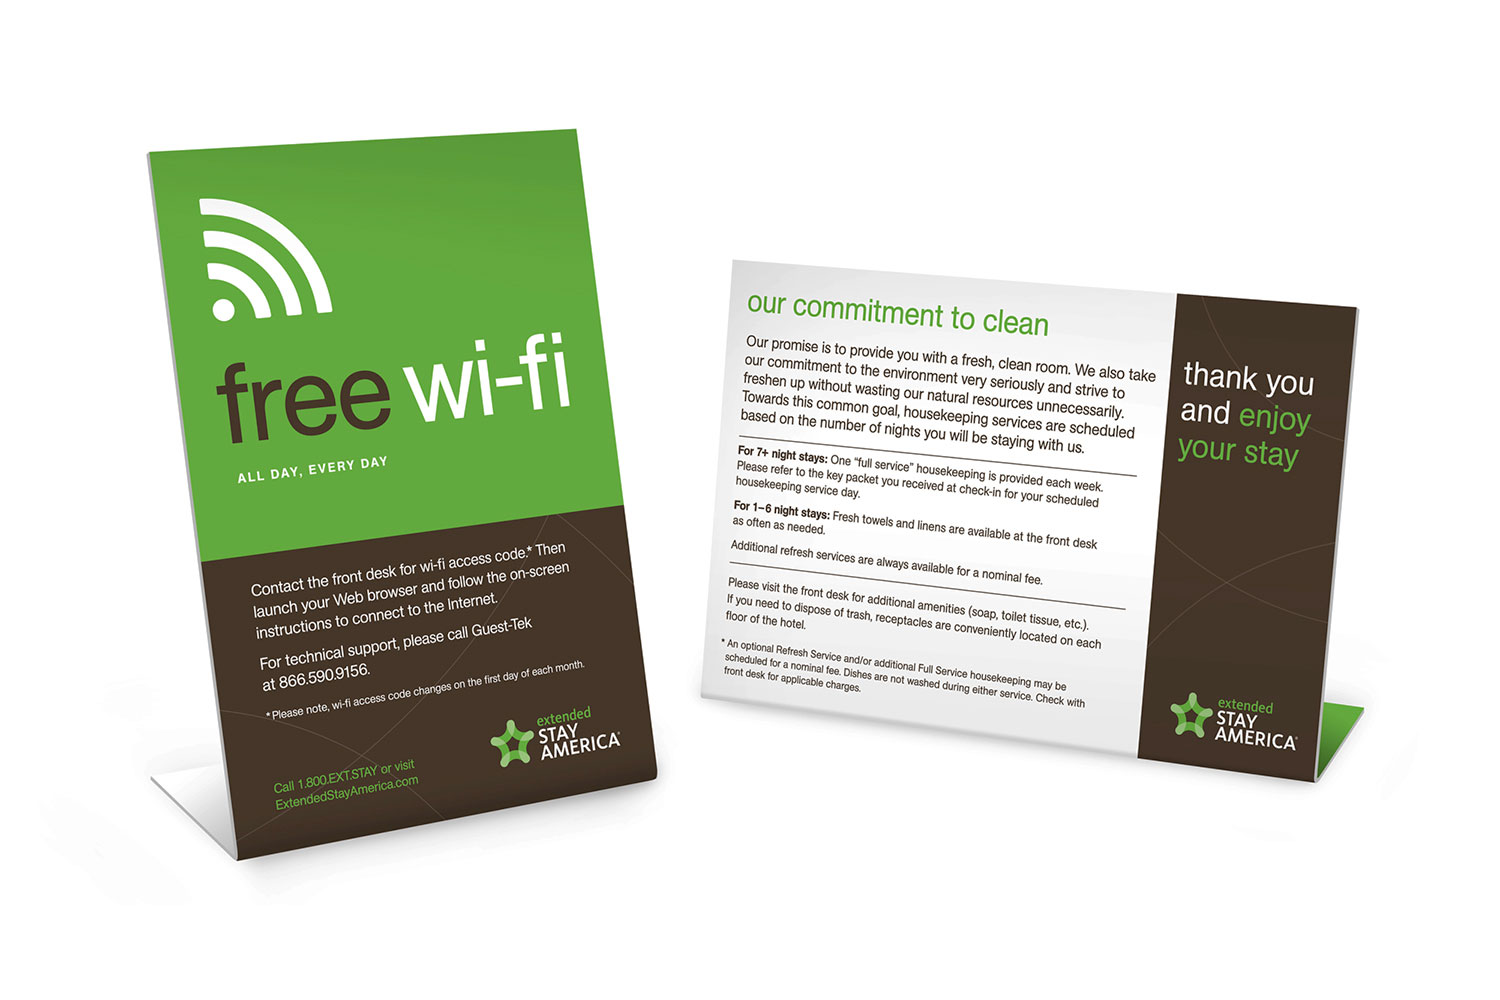 Extended Stay America placards promoting free wi-fi and housekeeping services